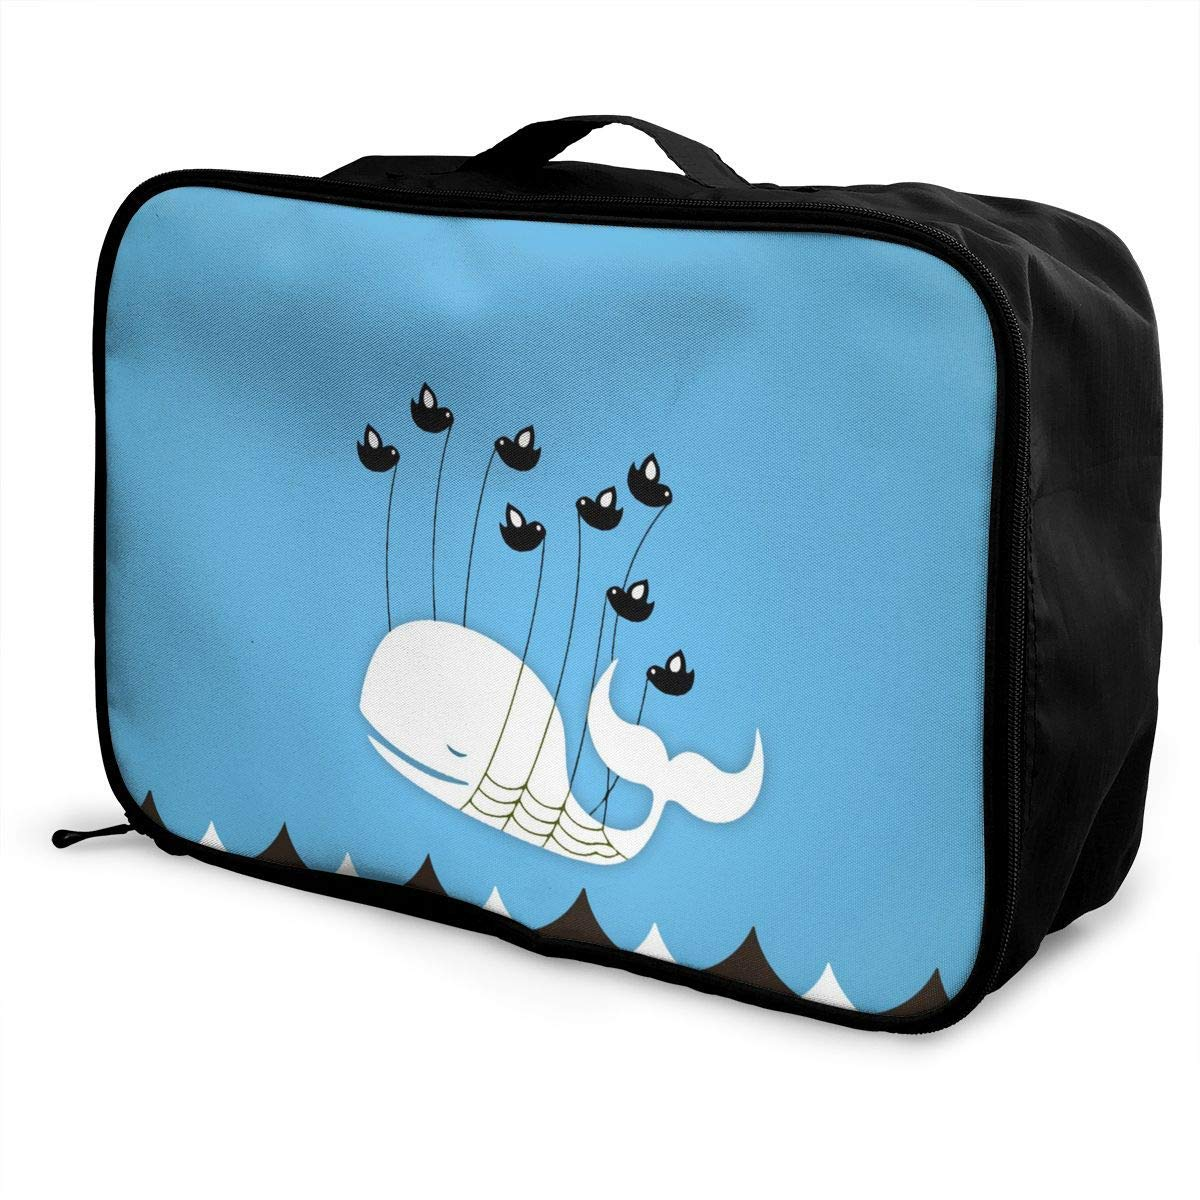 Lightweight Large Capacity Portable Duffel Bag for Men /& Women Whale And Birds Travel Duffel Bag Backpack JTRVW Luggage Bags for Travel